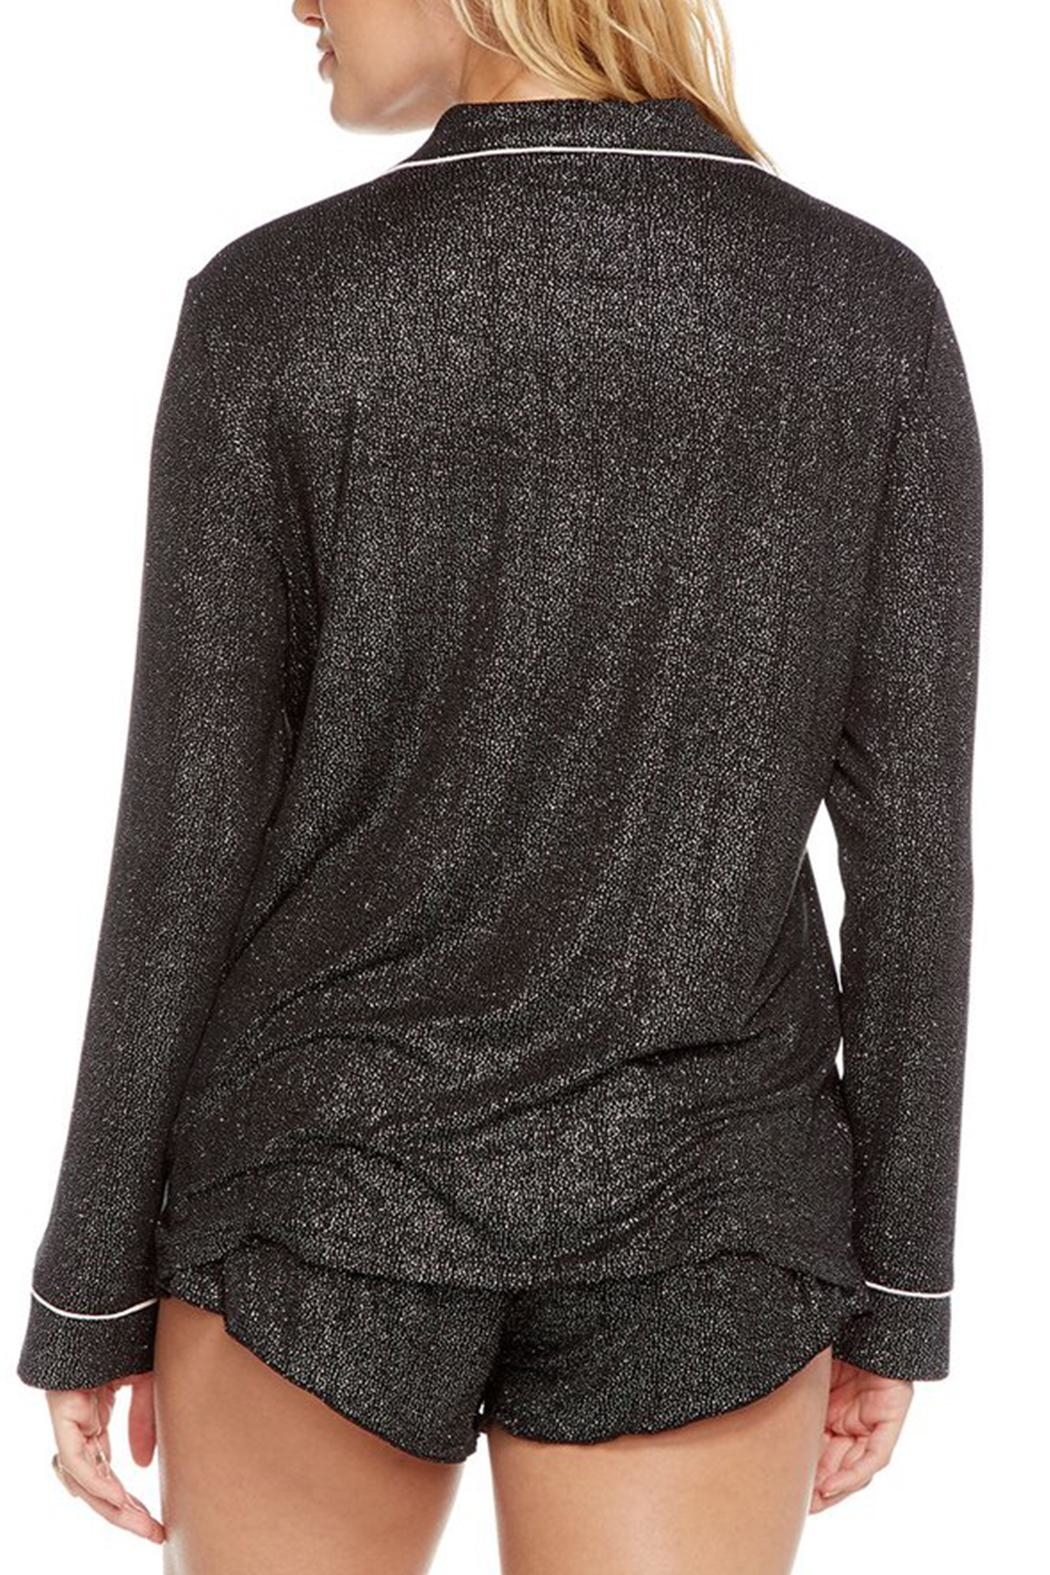 Chaser Glitter Intimate Top - Front Full Image